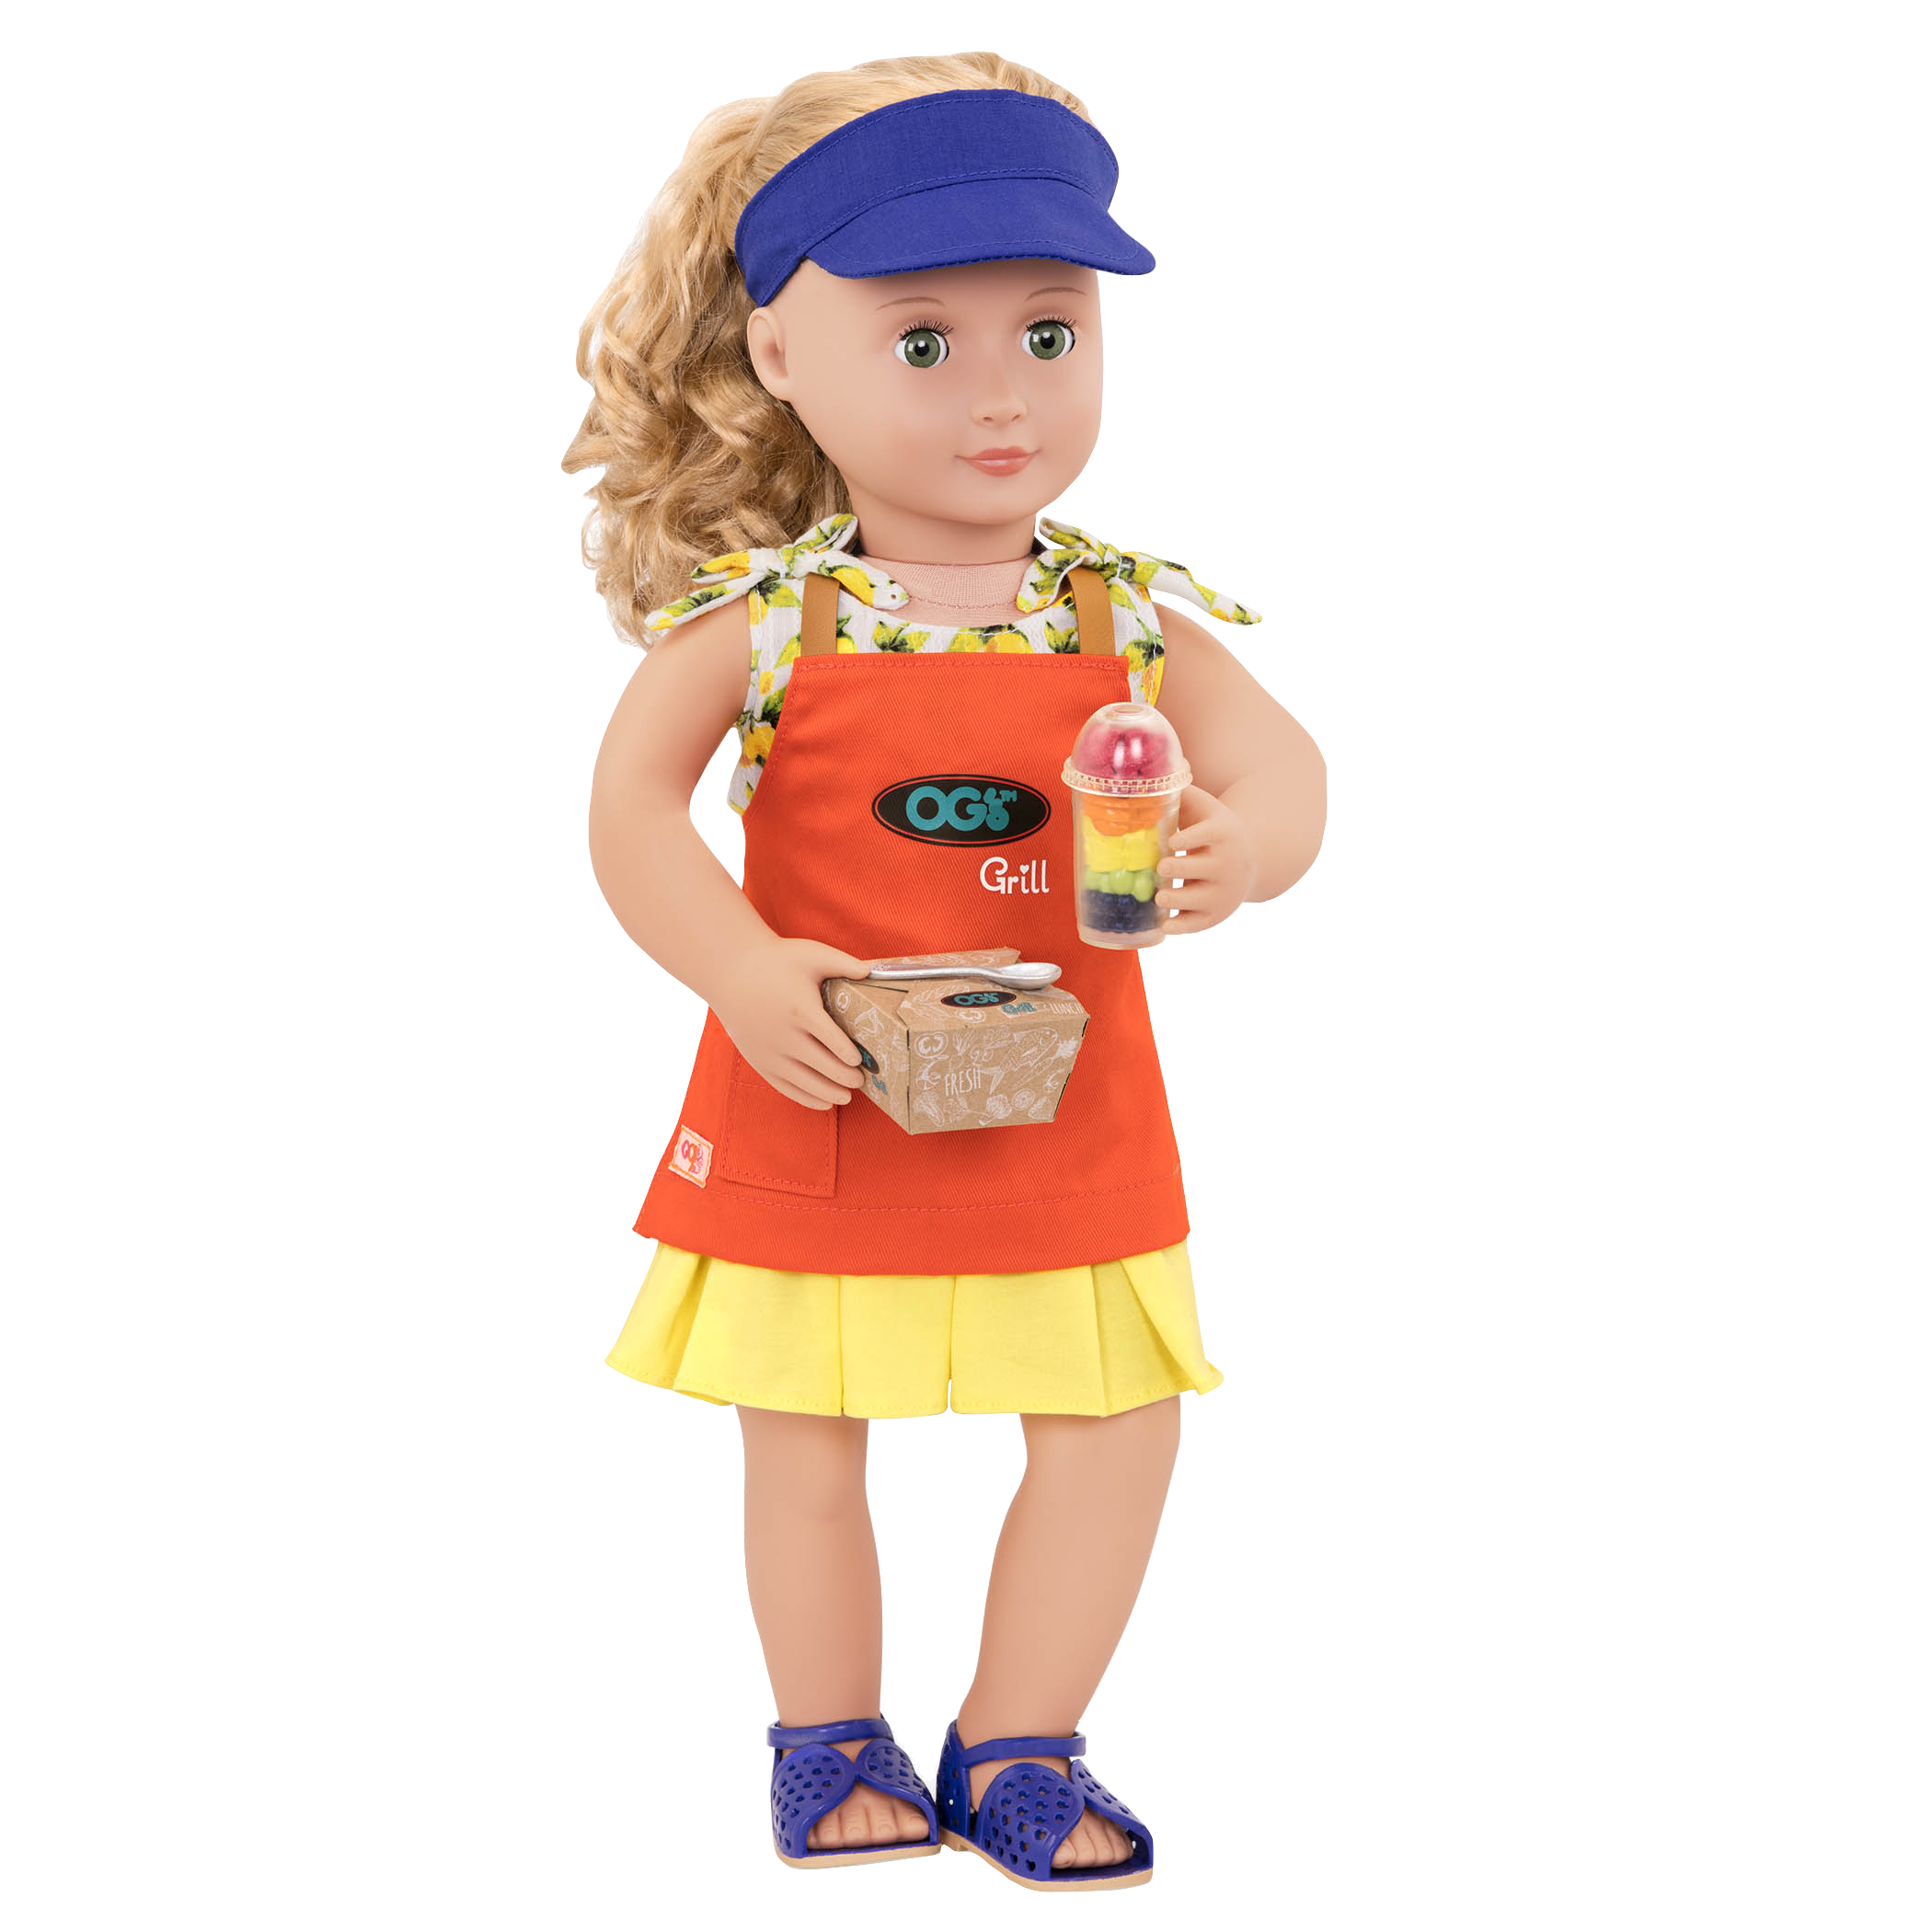 Jenny wearing clothes and holding Apron